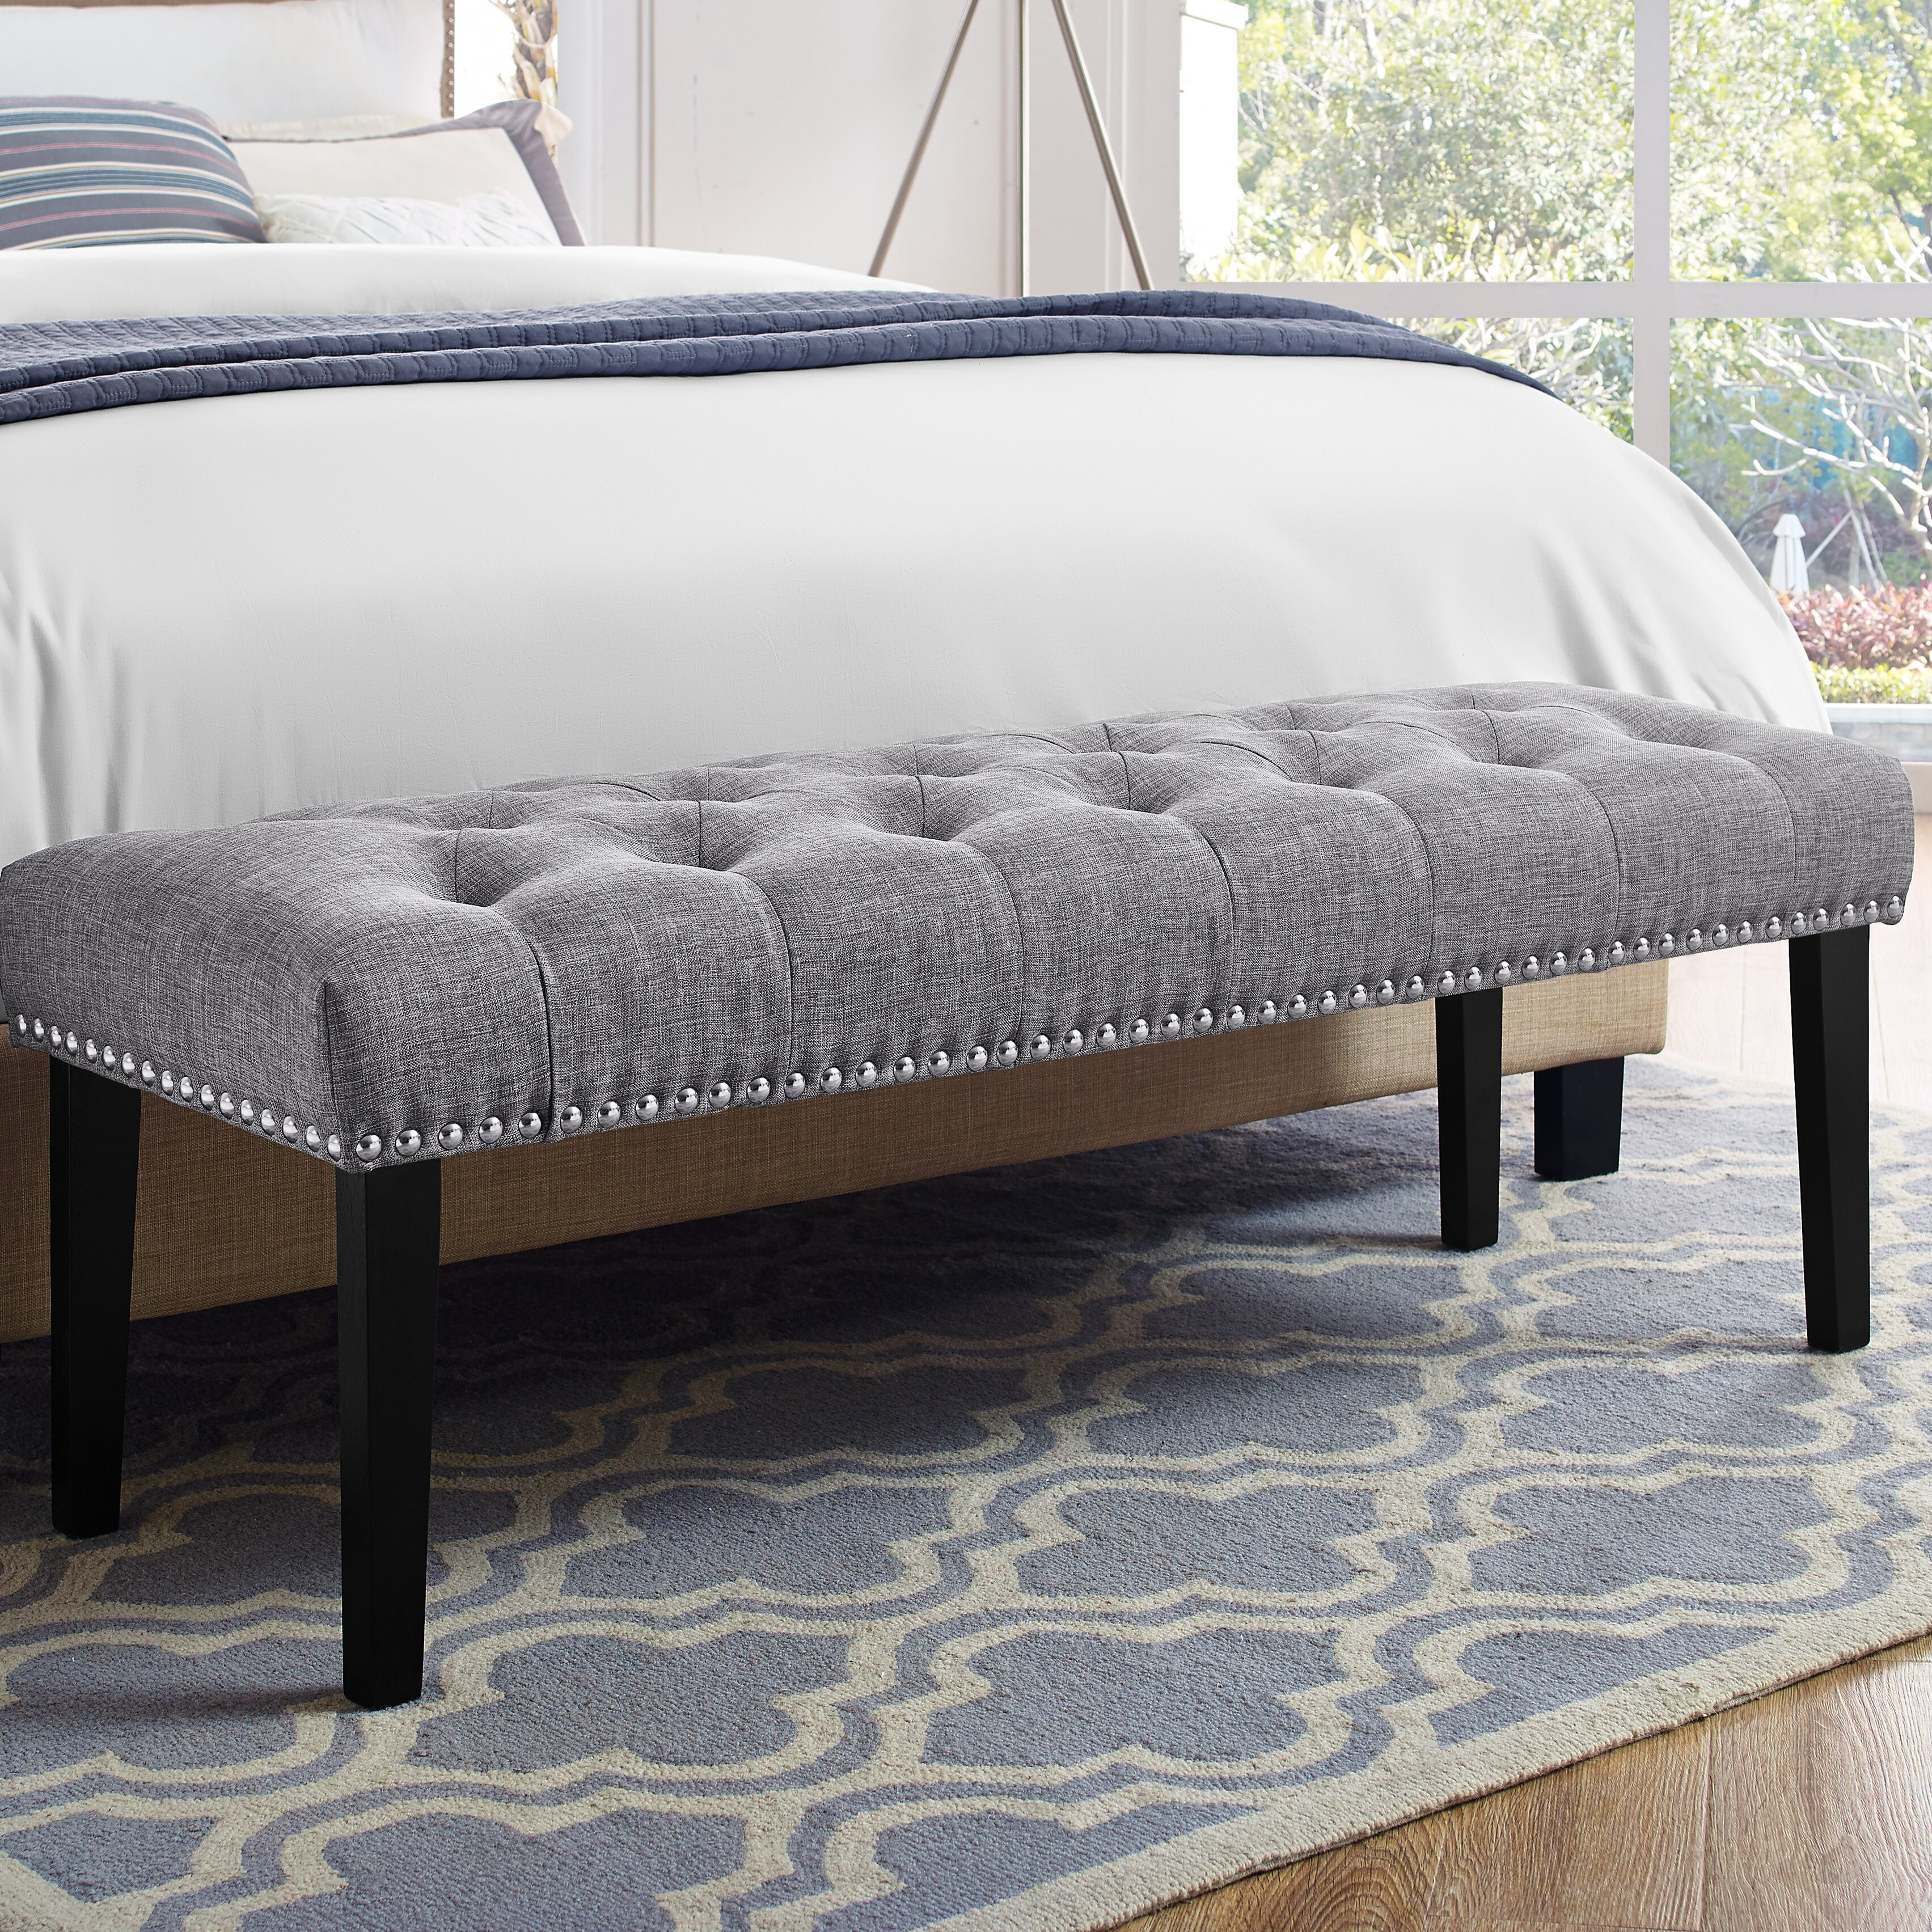 Bedroom Benches Up To 55 Off Through 02 16 Wayfair